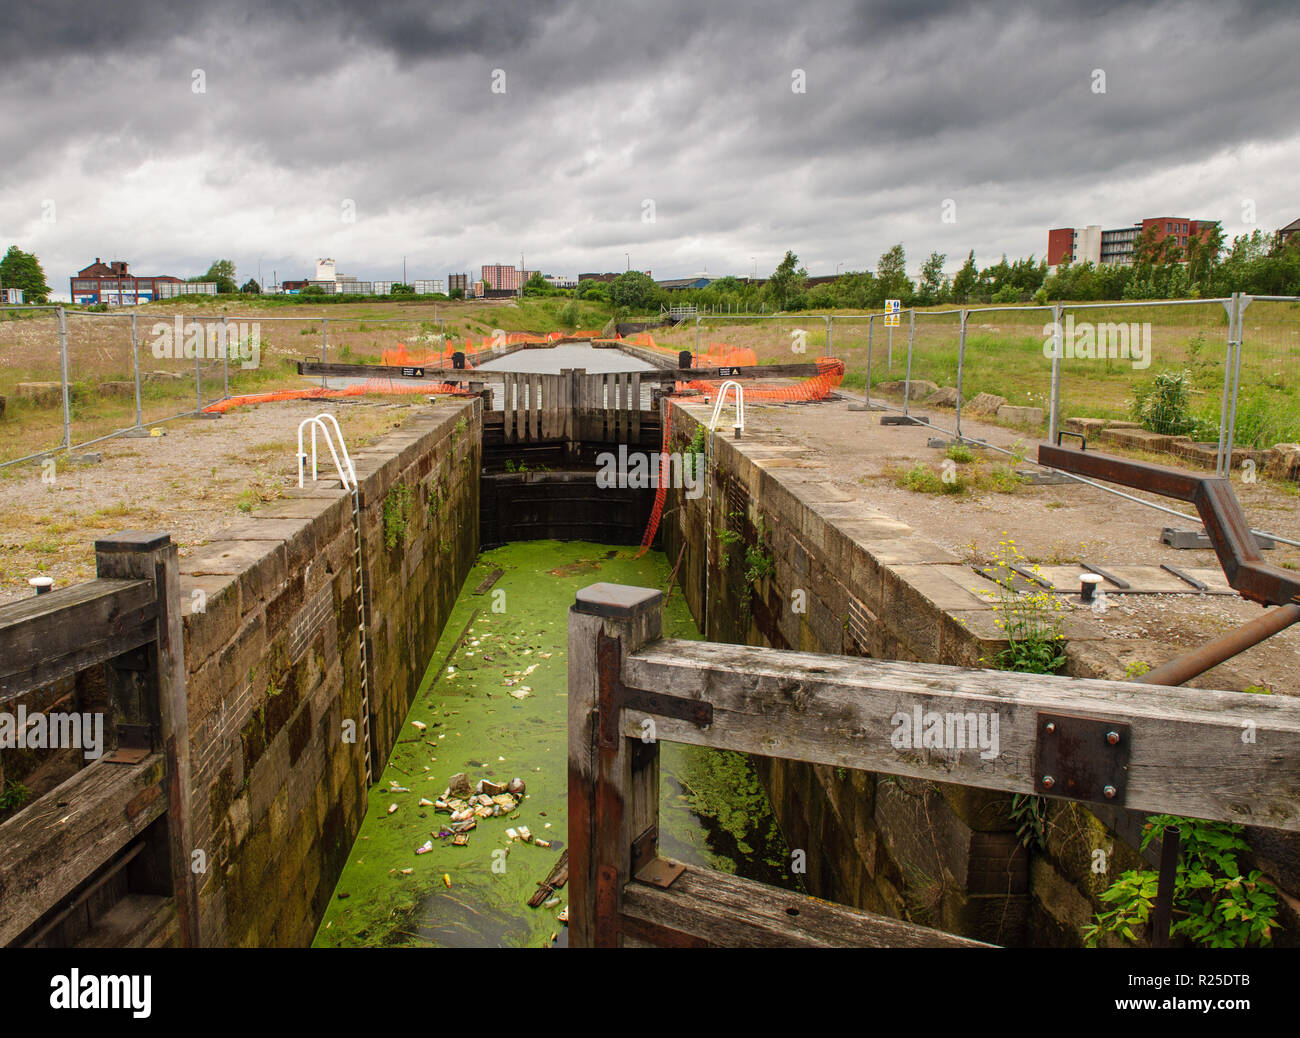 Salford, England, UK - June 16, 2012: Rubbish gathers in what remains of the Manchester Bolton & Bury Canal during regeneration of wasteland in centra - Stock Image